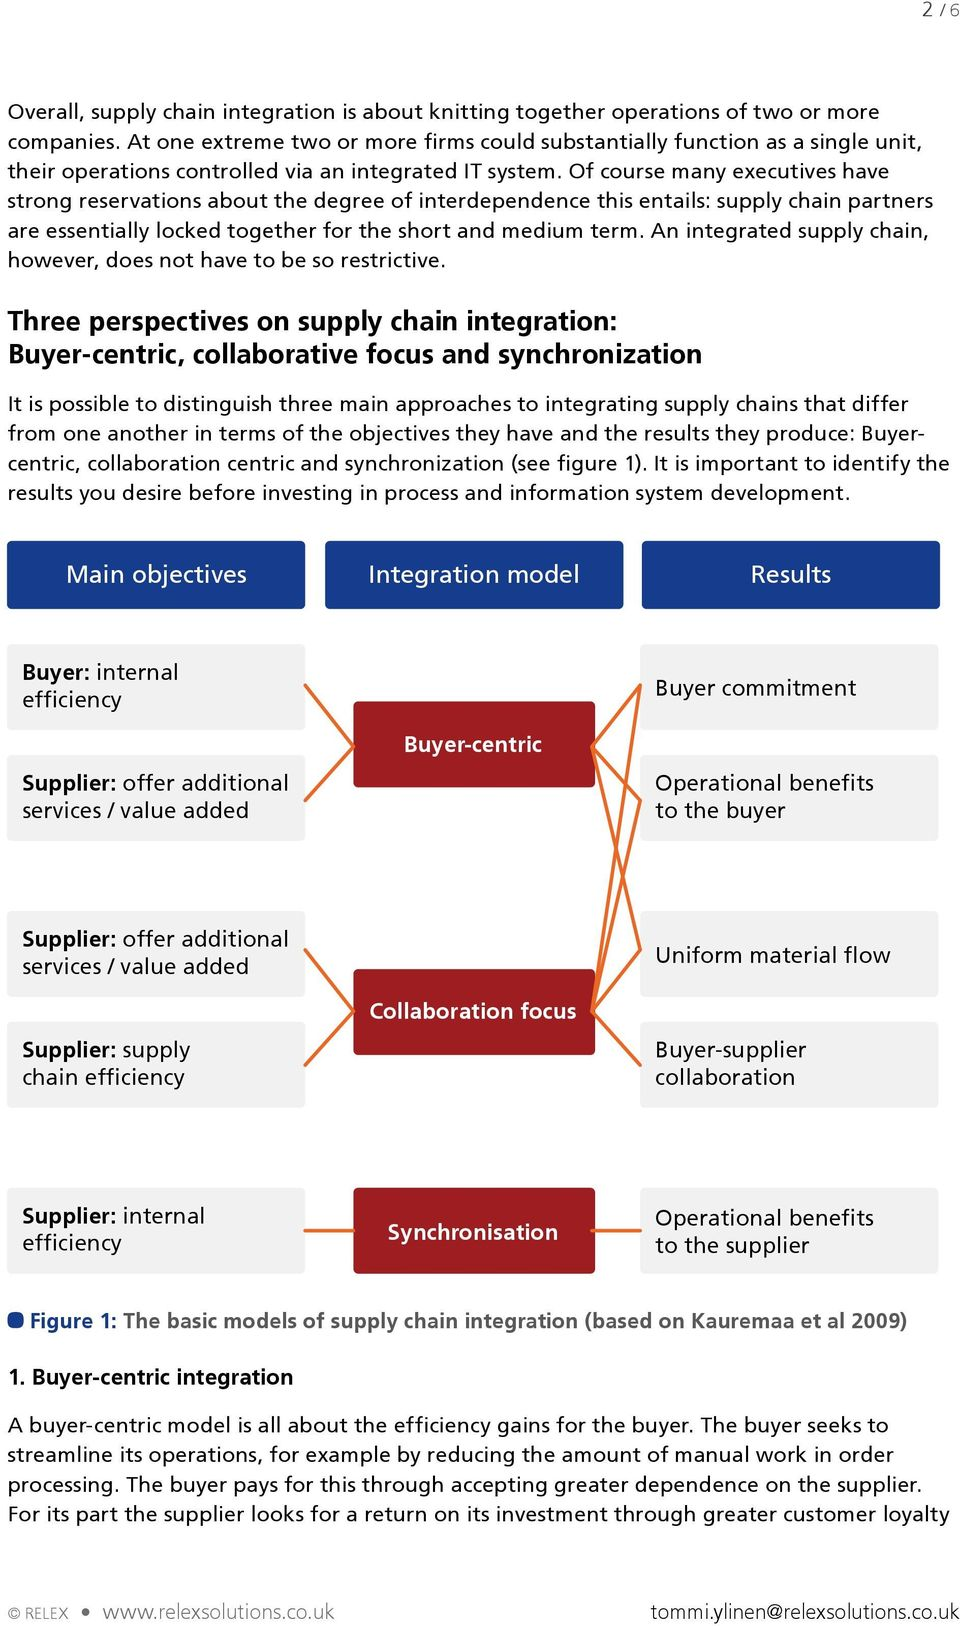 Of course many executives have strong reservations about the degree of interdependence this entails: supply chain partners are essentially locked together for the short and medium term.